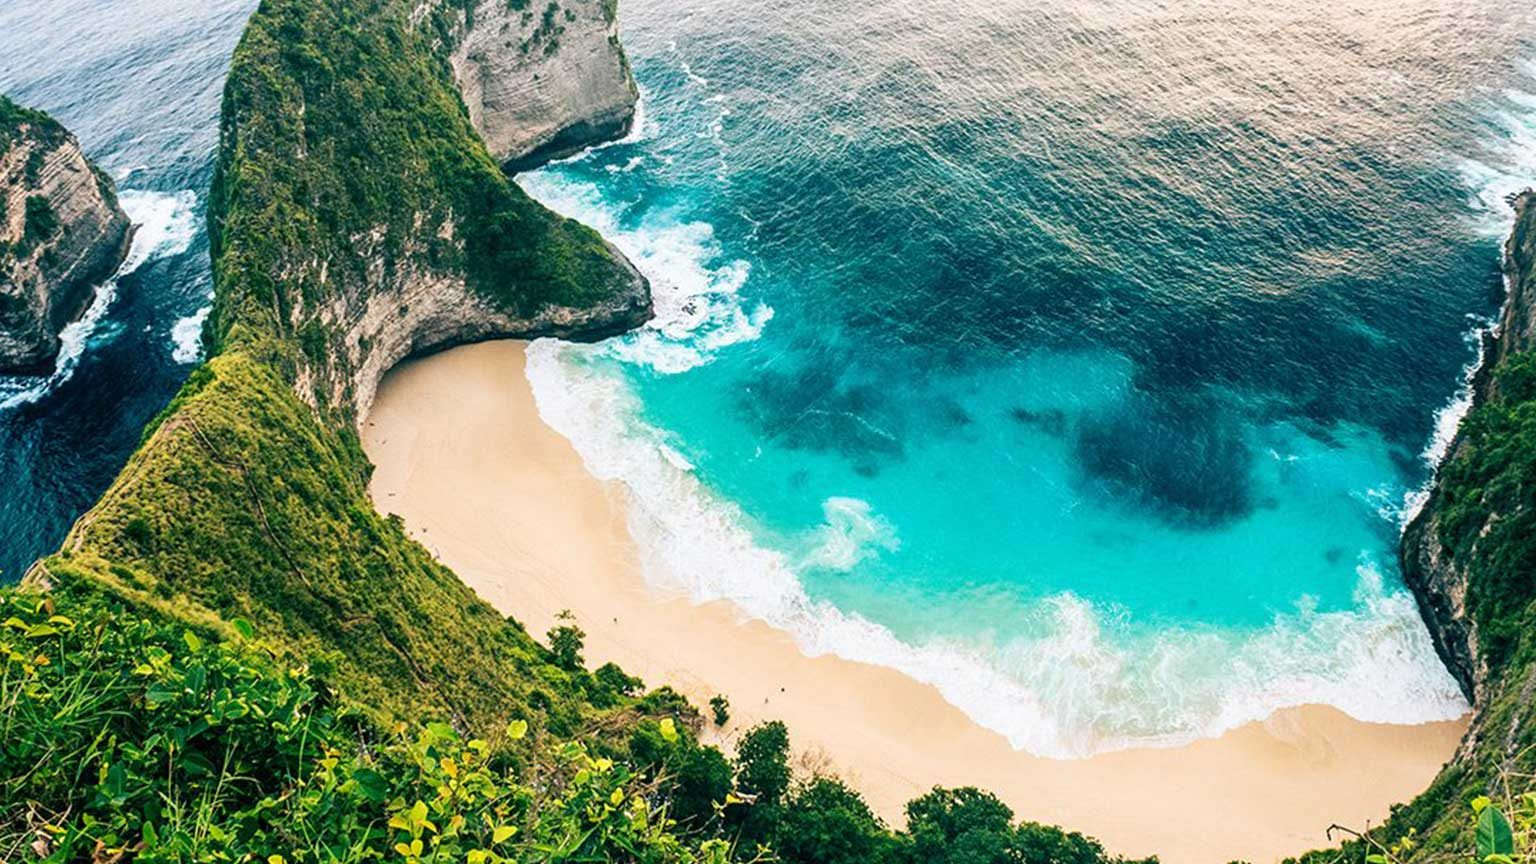 Aerial view of Bali beach in a cove with high cliffs